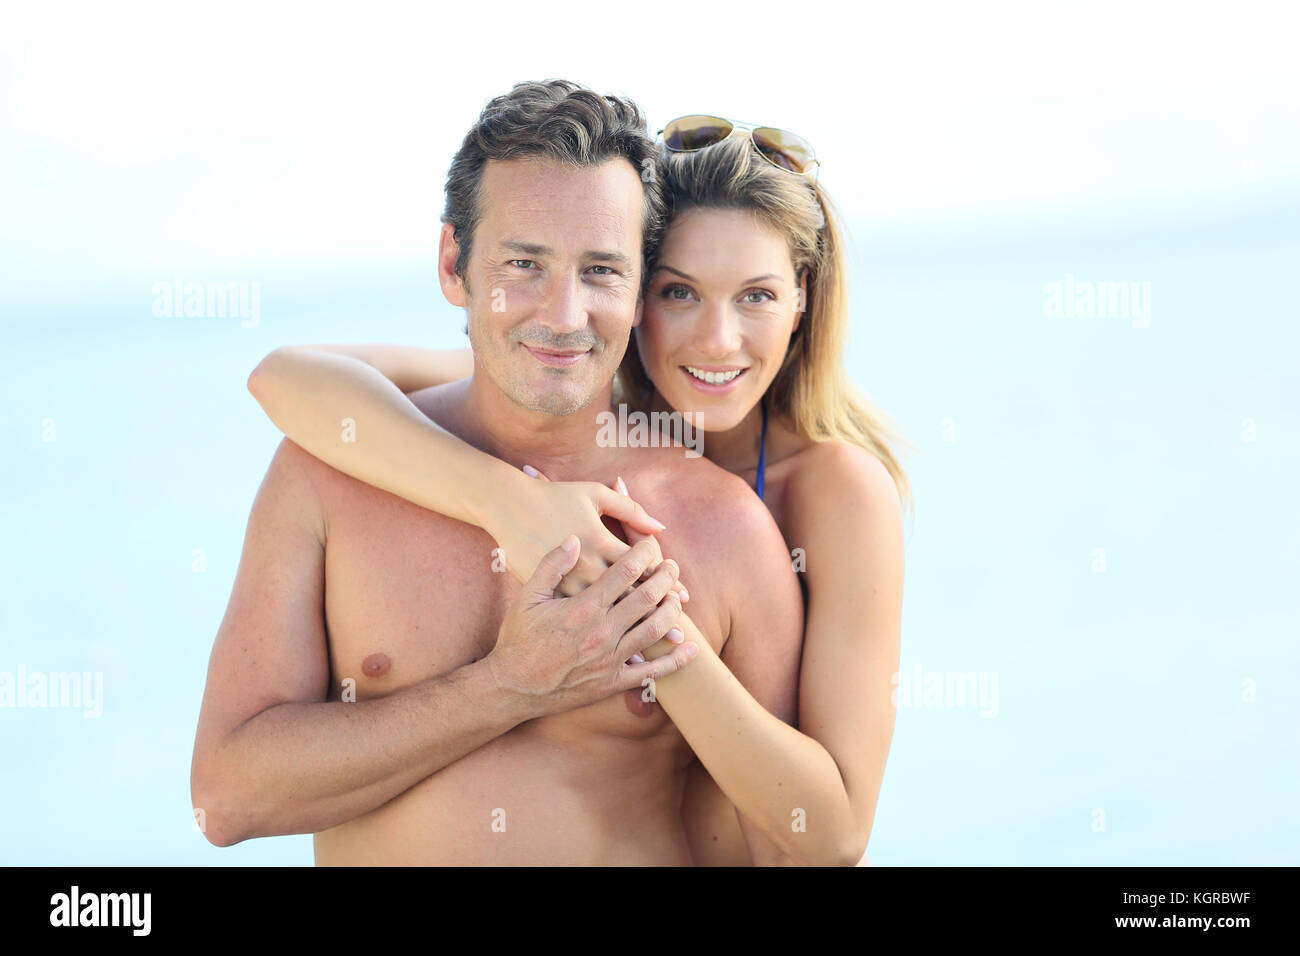 Portrait of middle-aged couple embracing by the beach - Stock Image